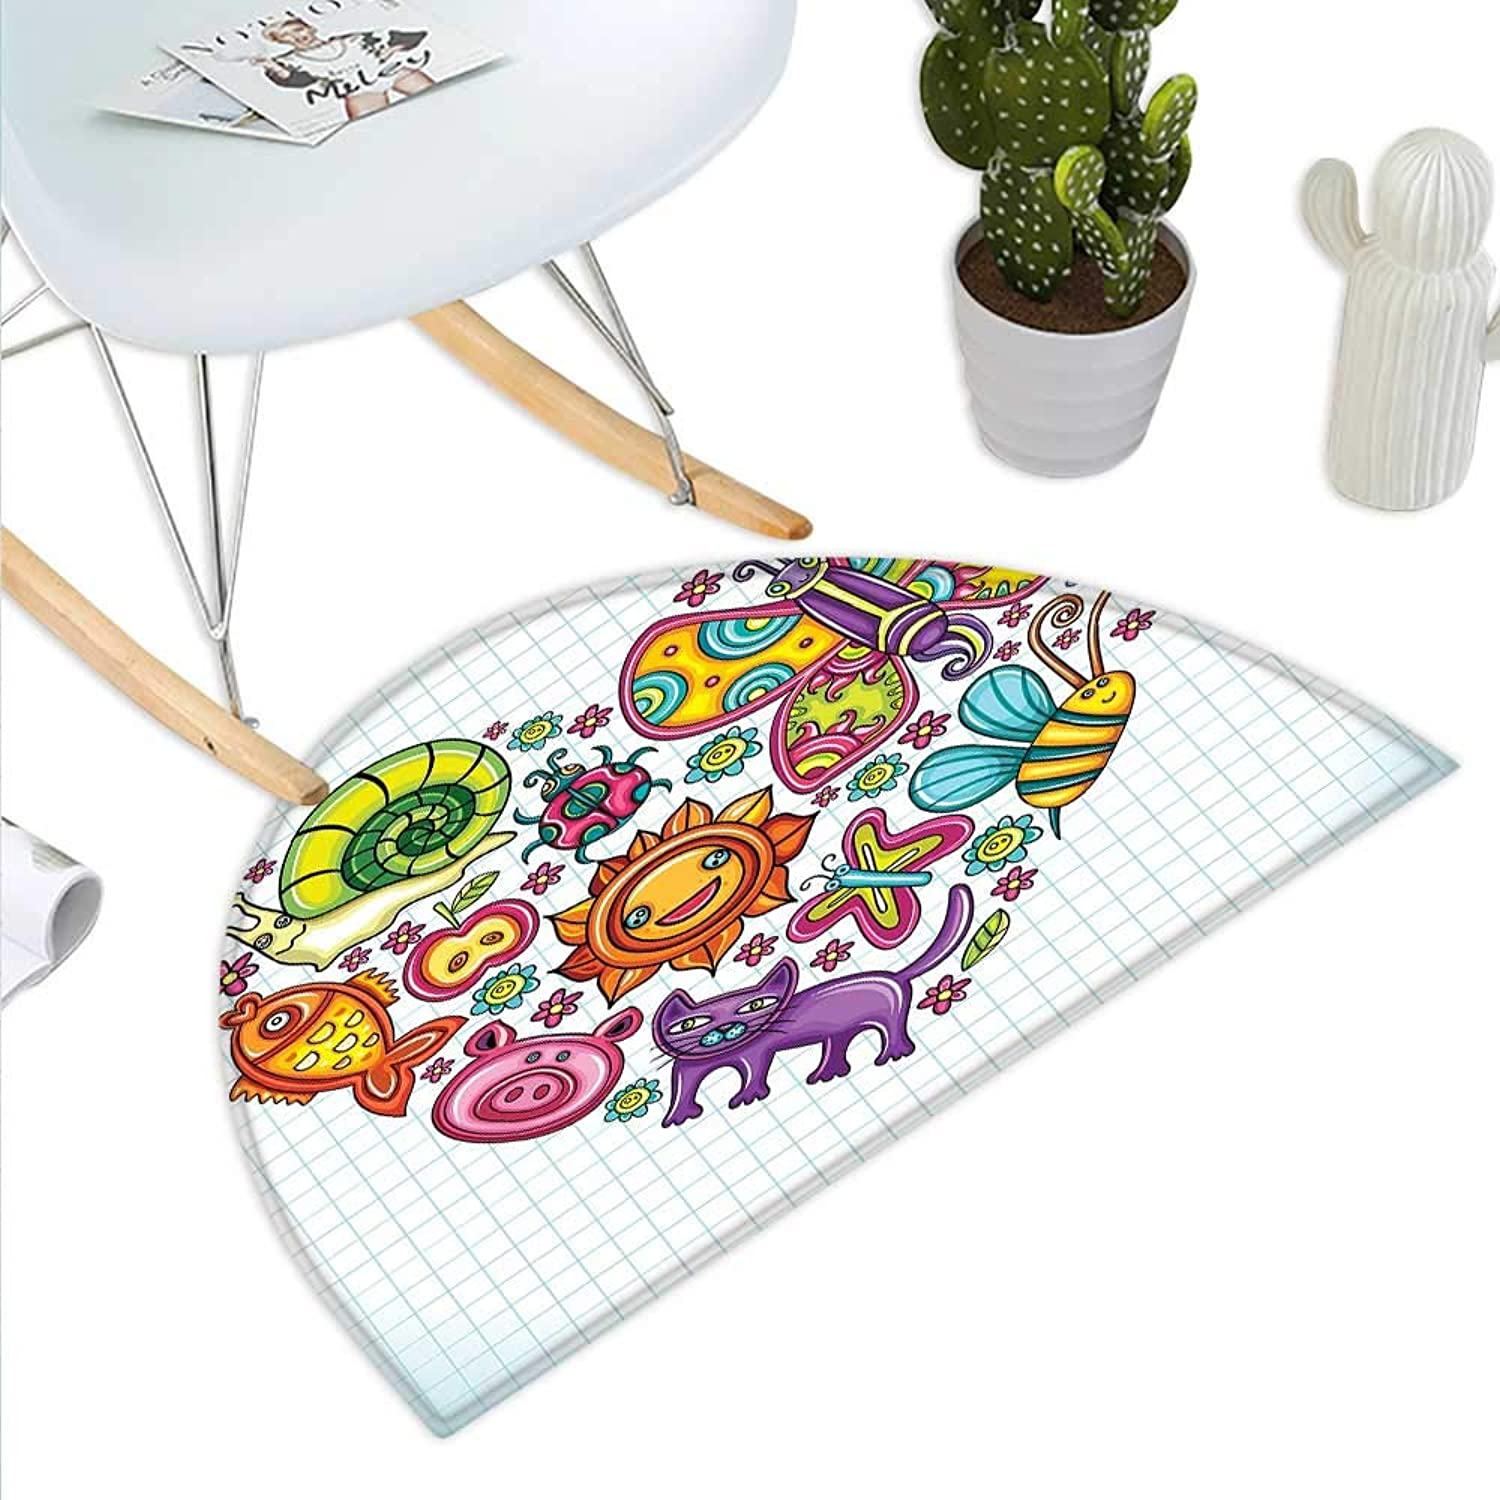 Doodle Semicircle Doormat Flora and Fauna Themed Heart Animals Birds and Plants Bumblebee Ladybug Leafs Cat Halfmoon doormats H 23.6  xD 35.4  Multicolor